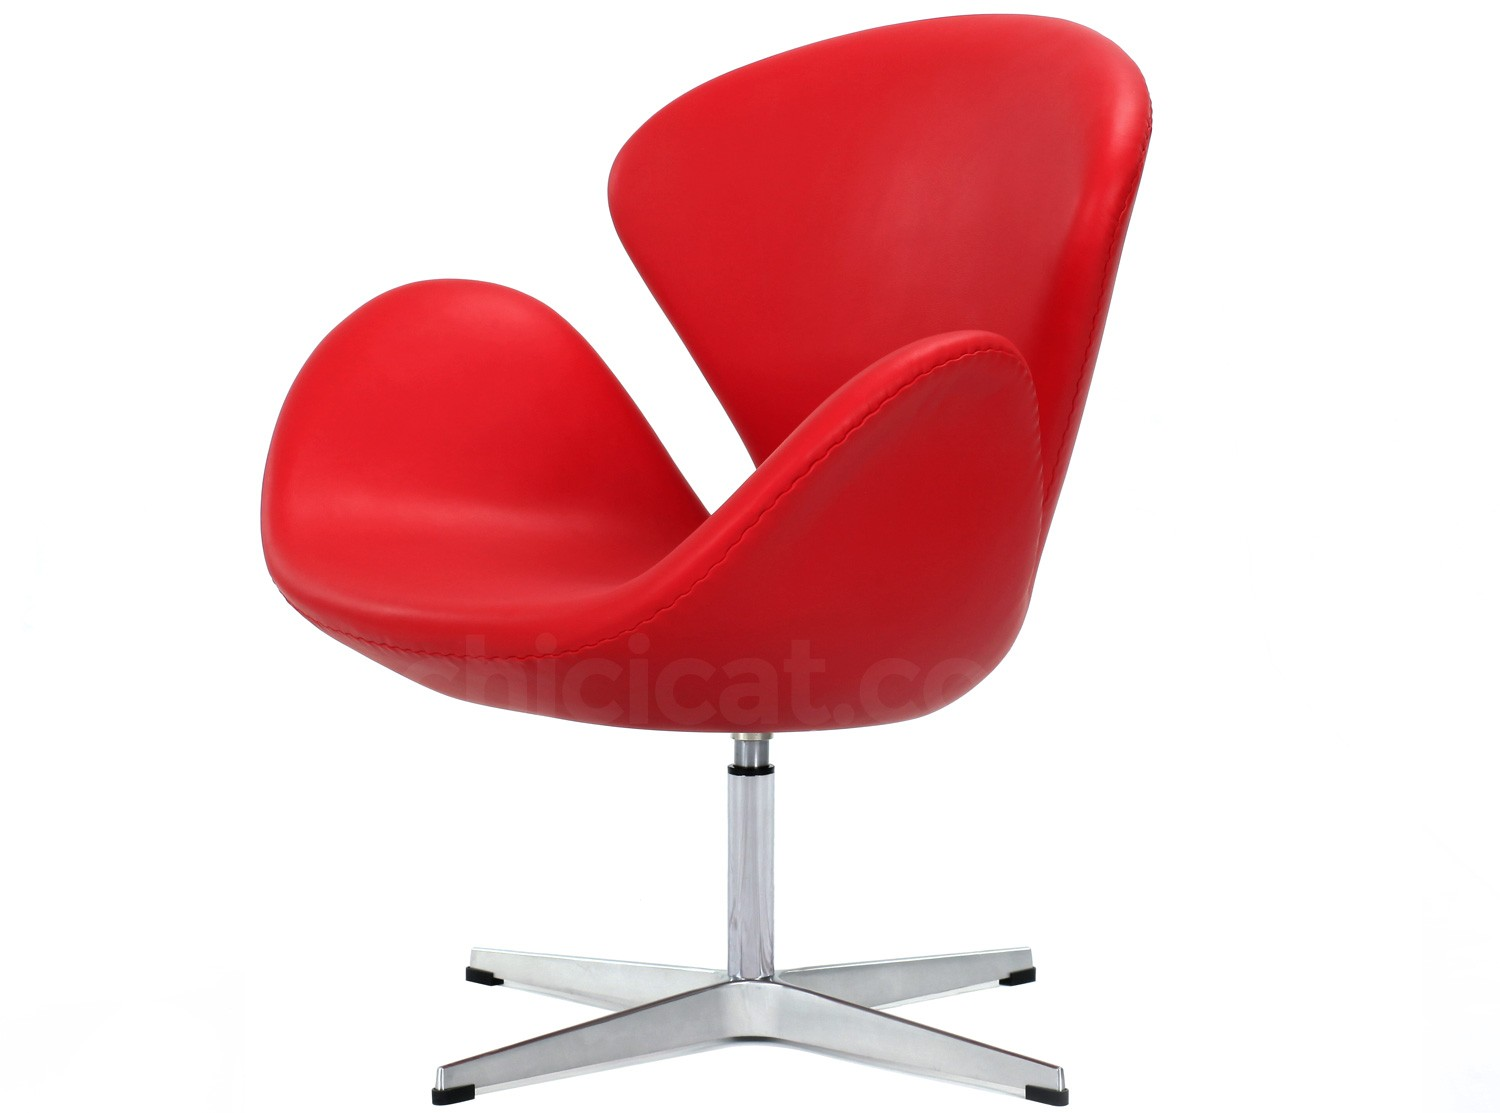 Swan Sessel Arne Jacobsen Swan Chair Leather Platinum Replica